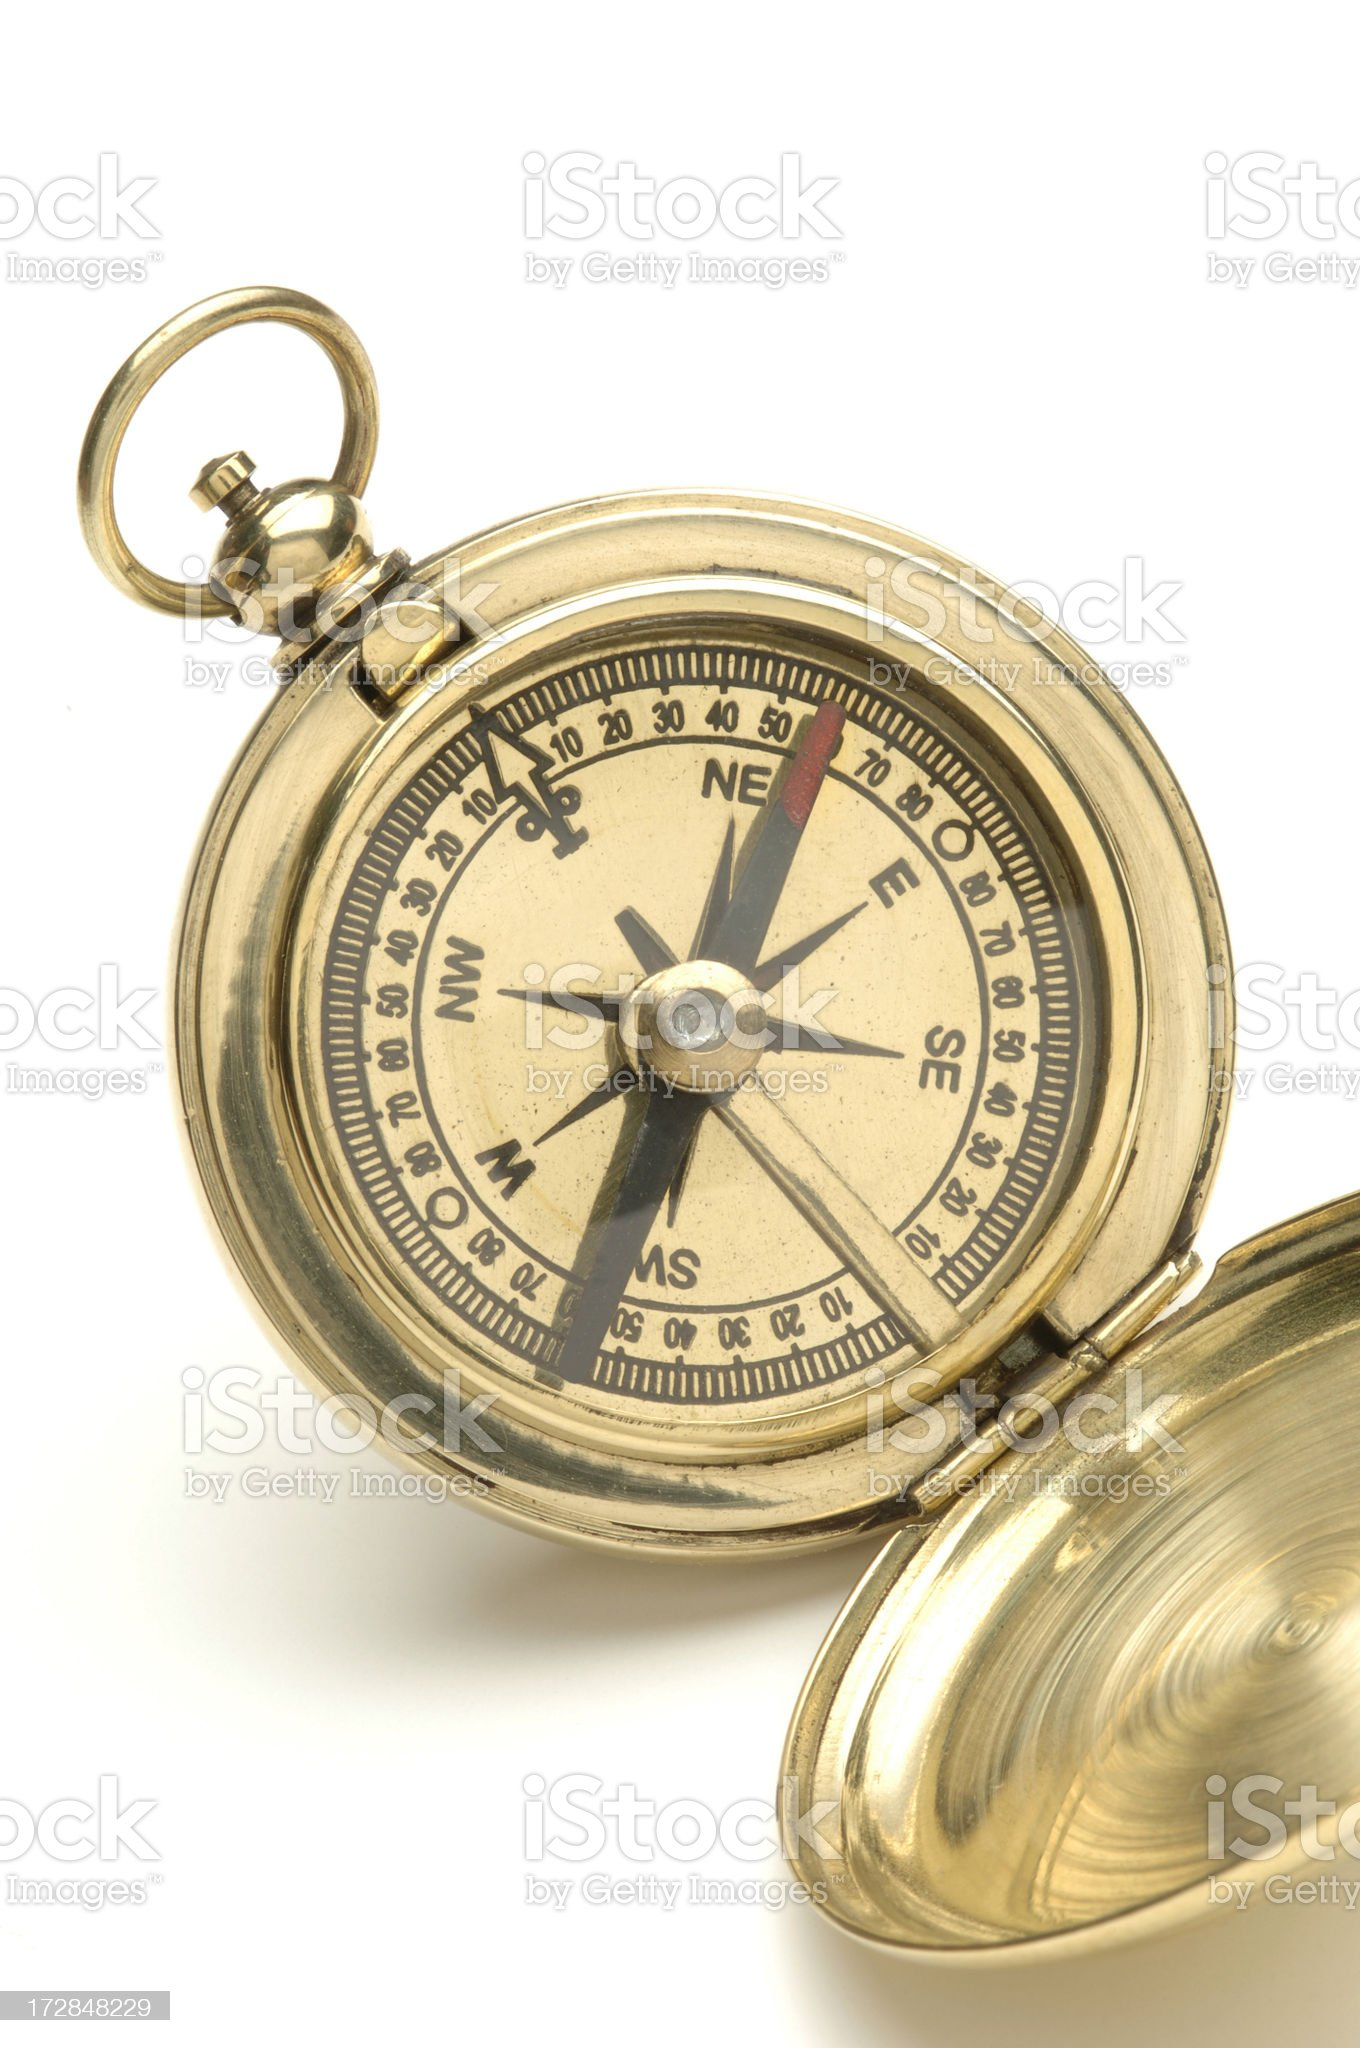 Golden Compass royalty-free stock photo